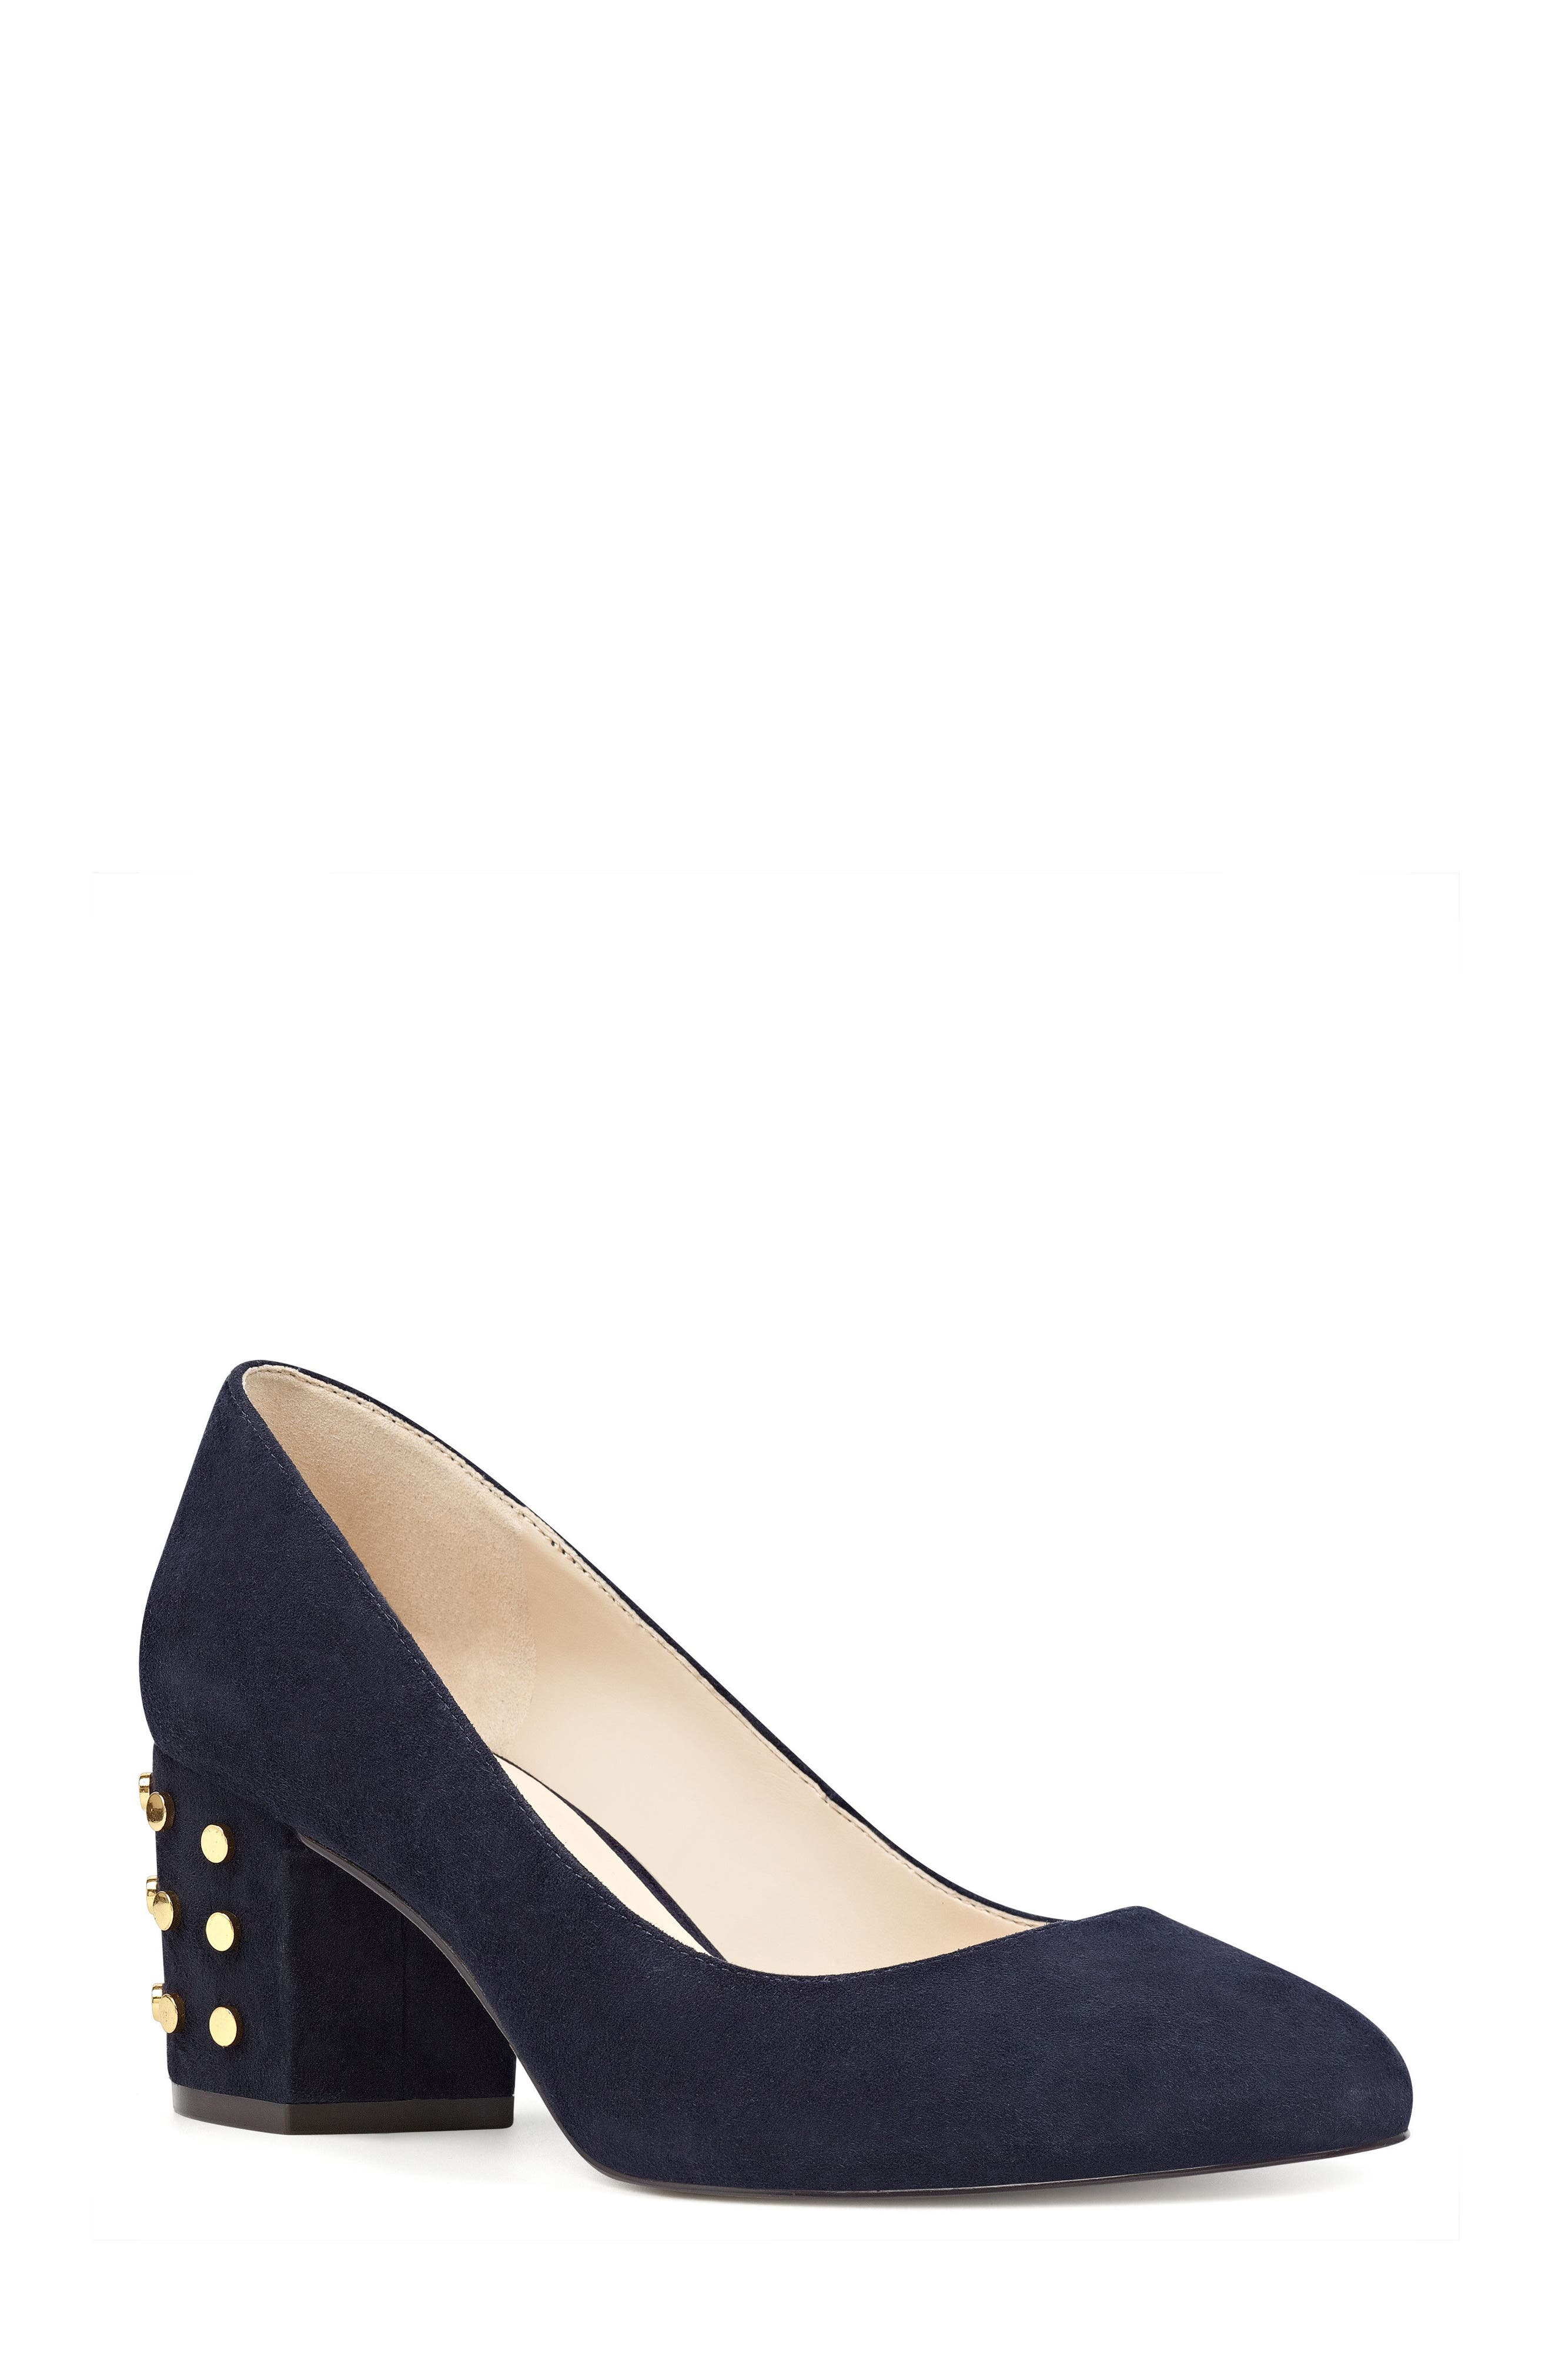 NINE WEST Cerys Studded Block Heel Pump